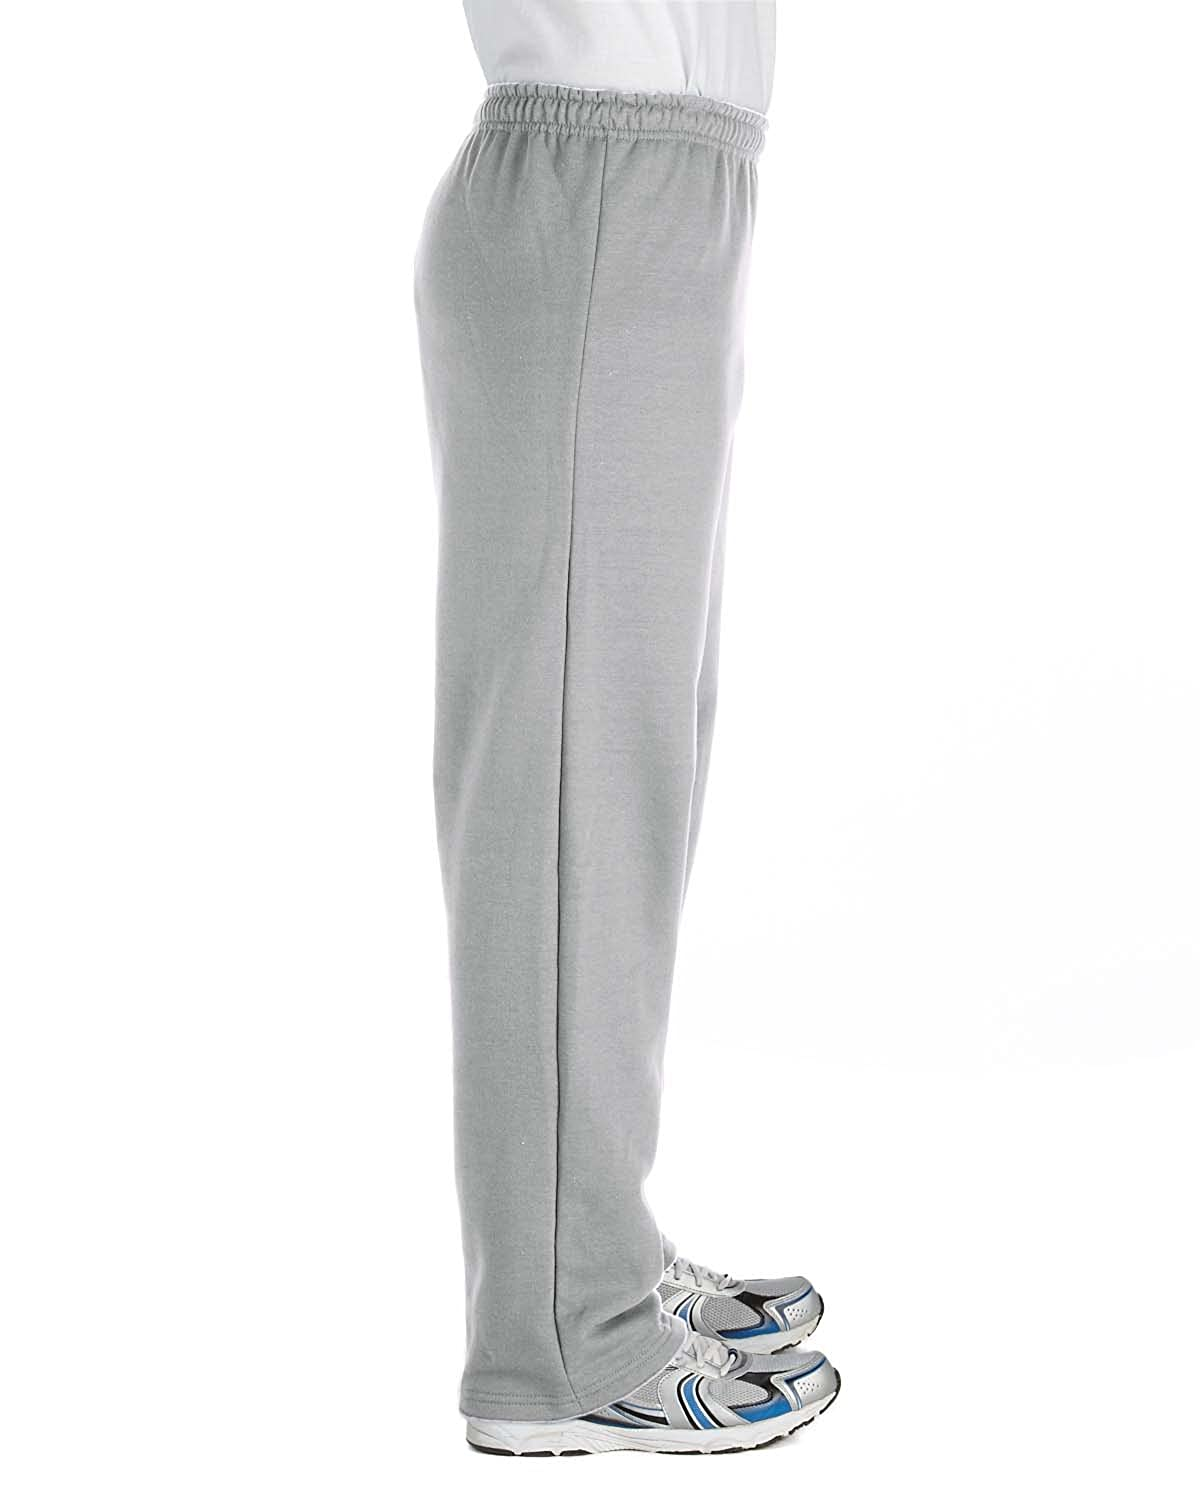 G184 -SPORT GREY -L-12PK Gildan Mens 8 oz Heavy Blend 50//50 Sweatpants